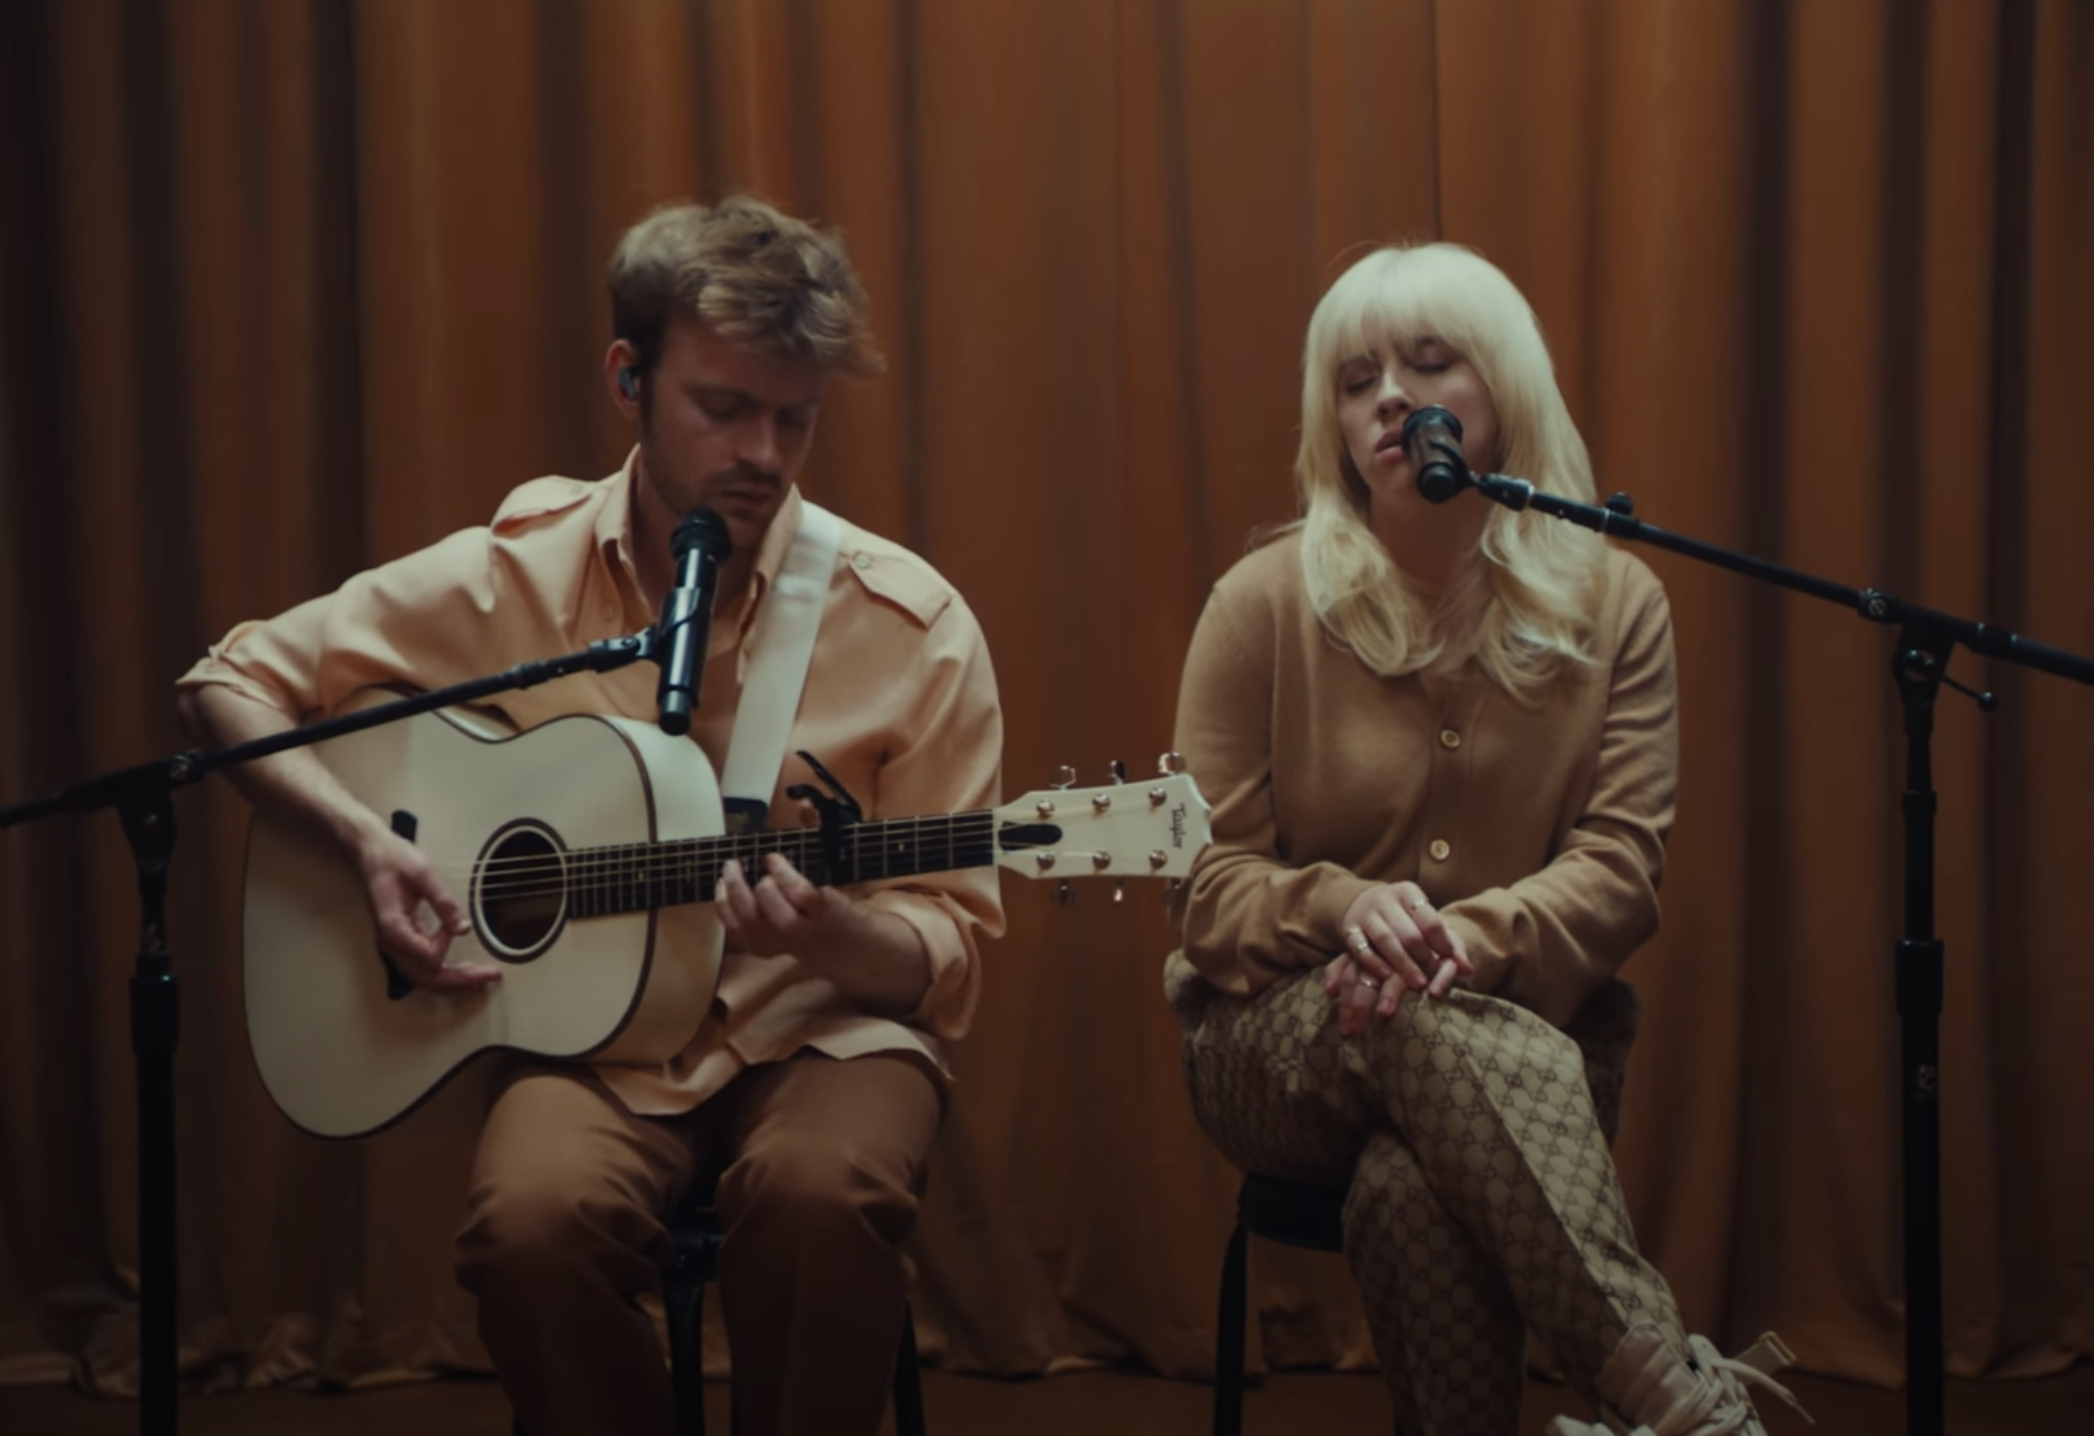 See Billie Eilish and Finneas Perform Acoustic Live Version of 'Your Power' - Rolling Stone